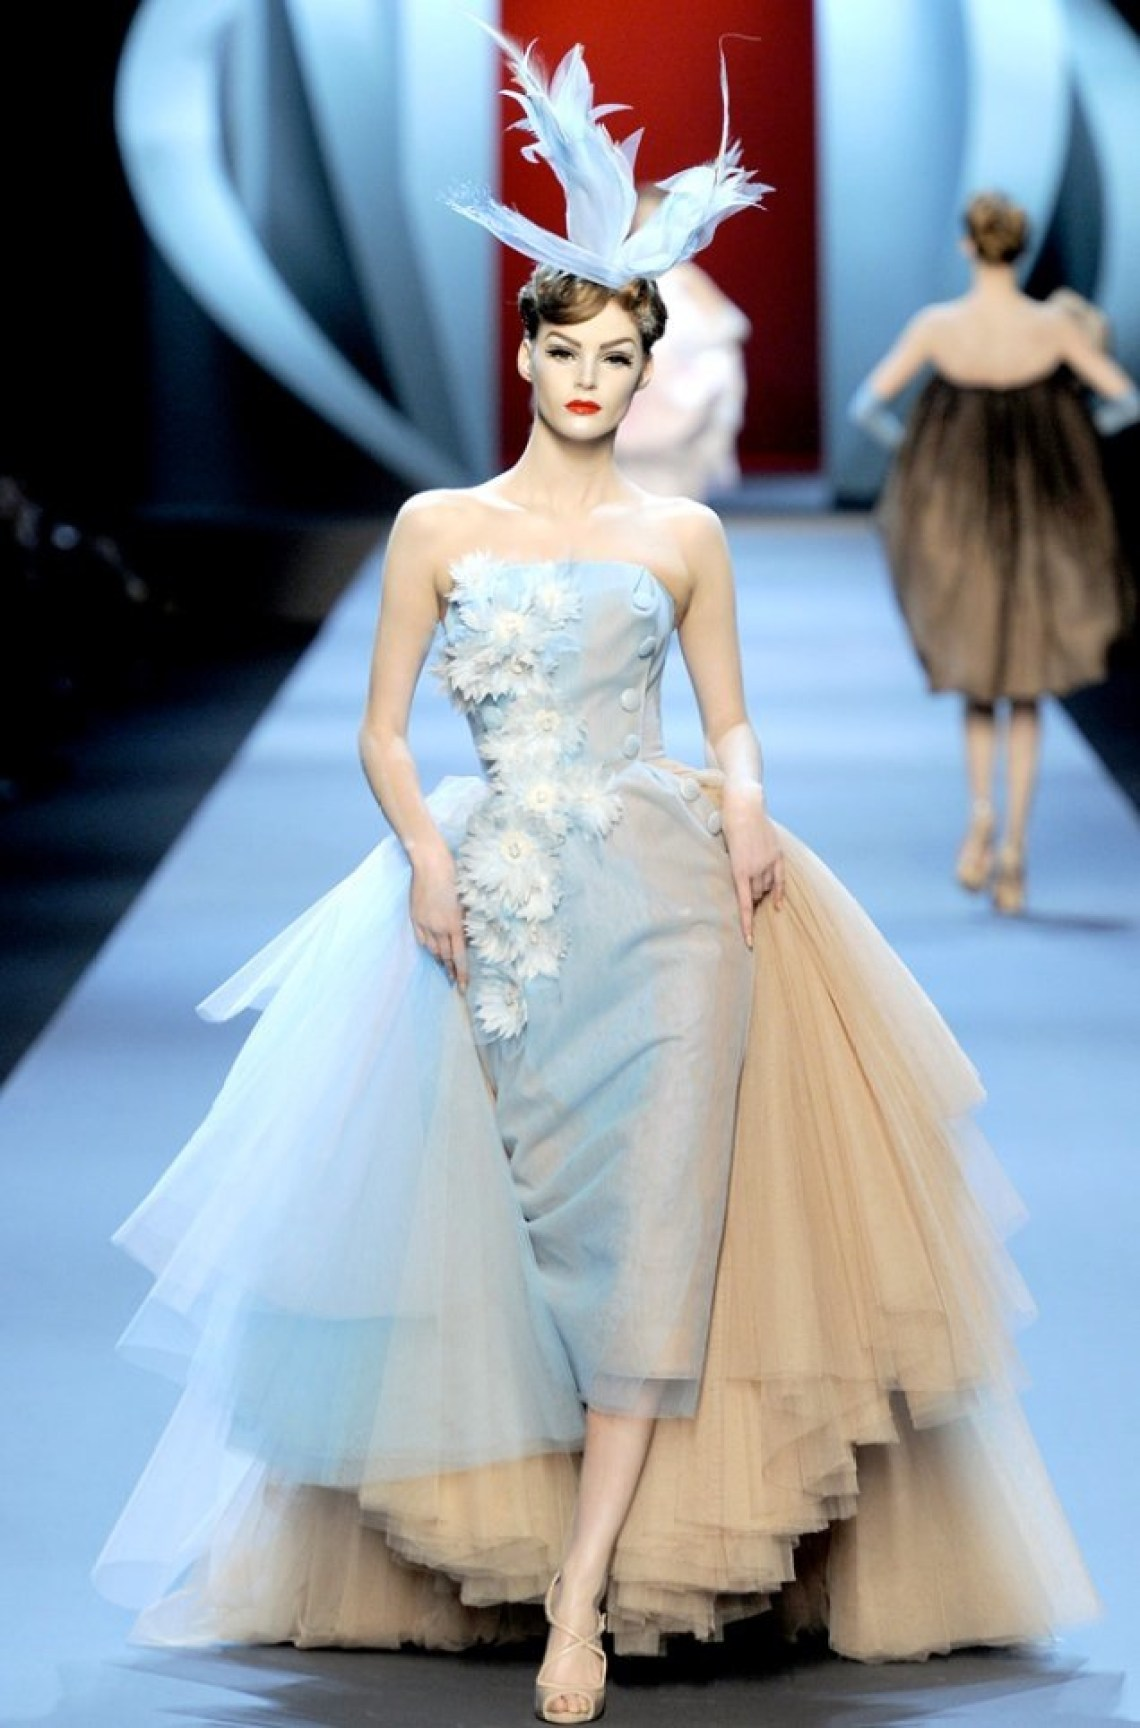 John Galliano Dior dress